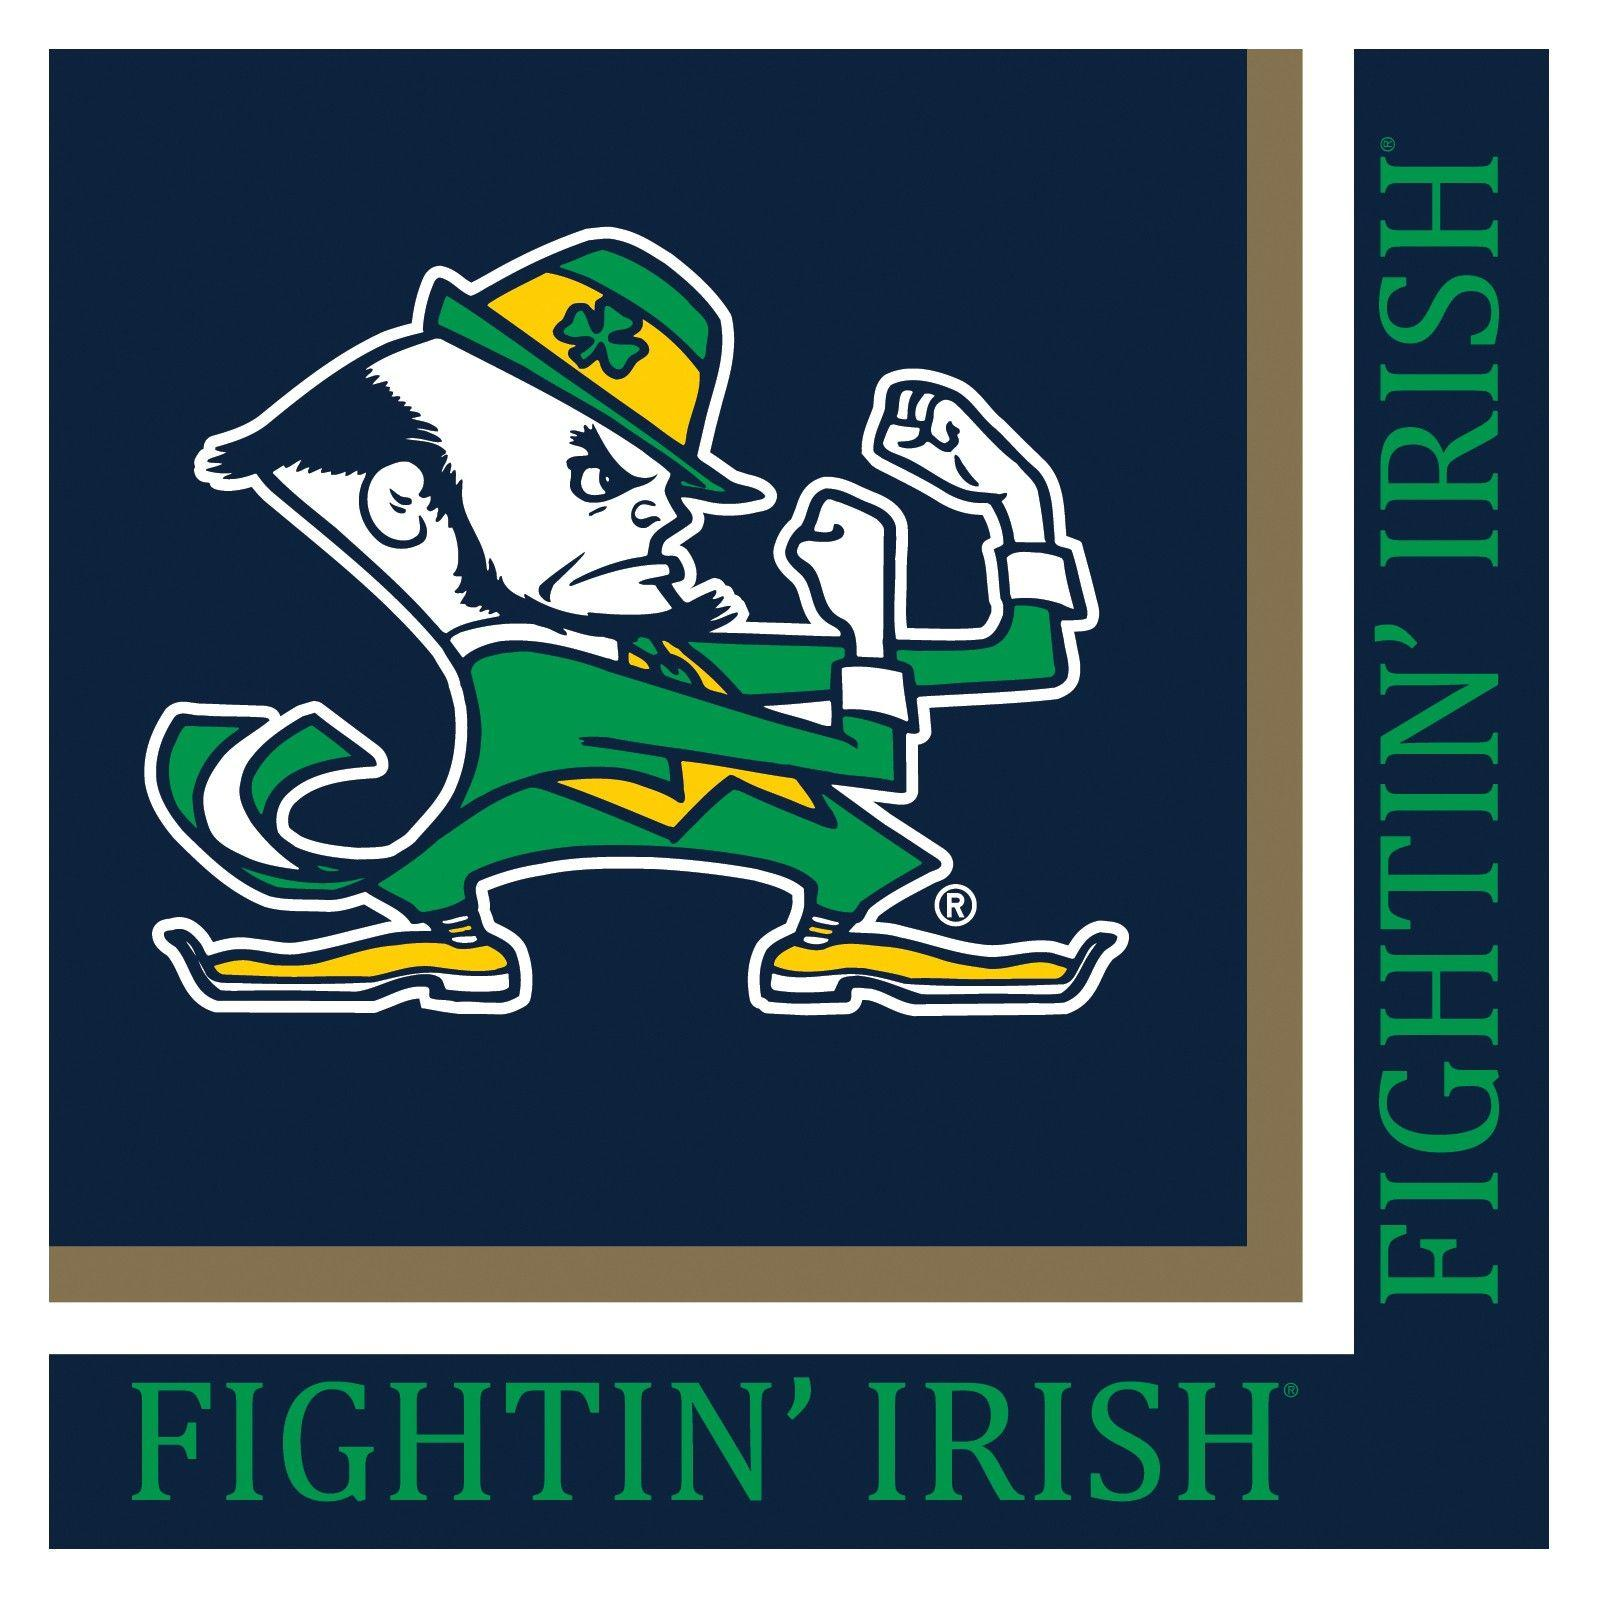 Notre Dame Football Wallpaper: Notre Dame Fighting Irish Football Wallpapers